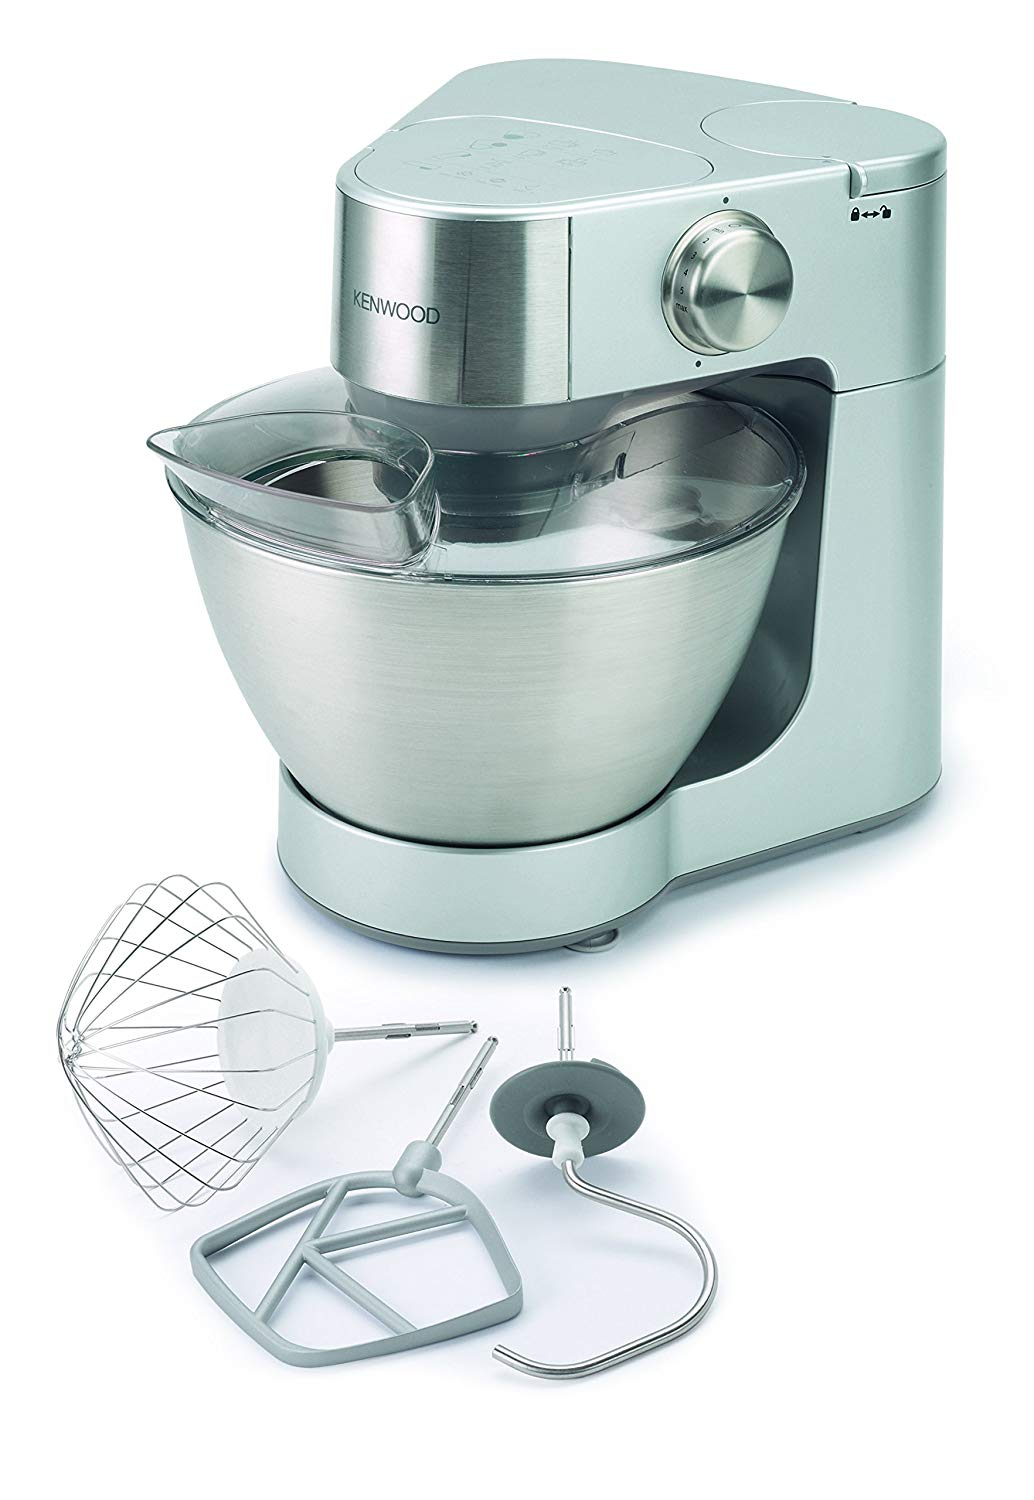 Kenwood KM240 Stand Mixer, 900 W [Energy Class A]